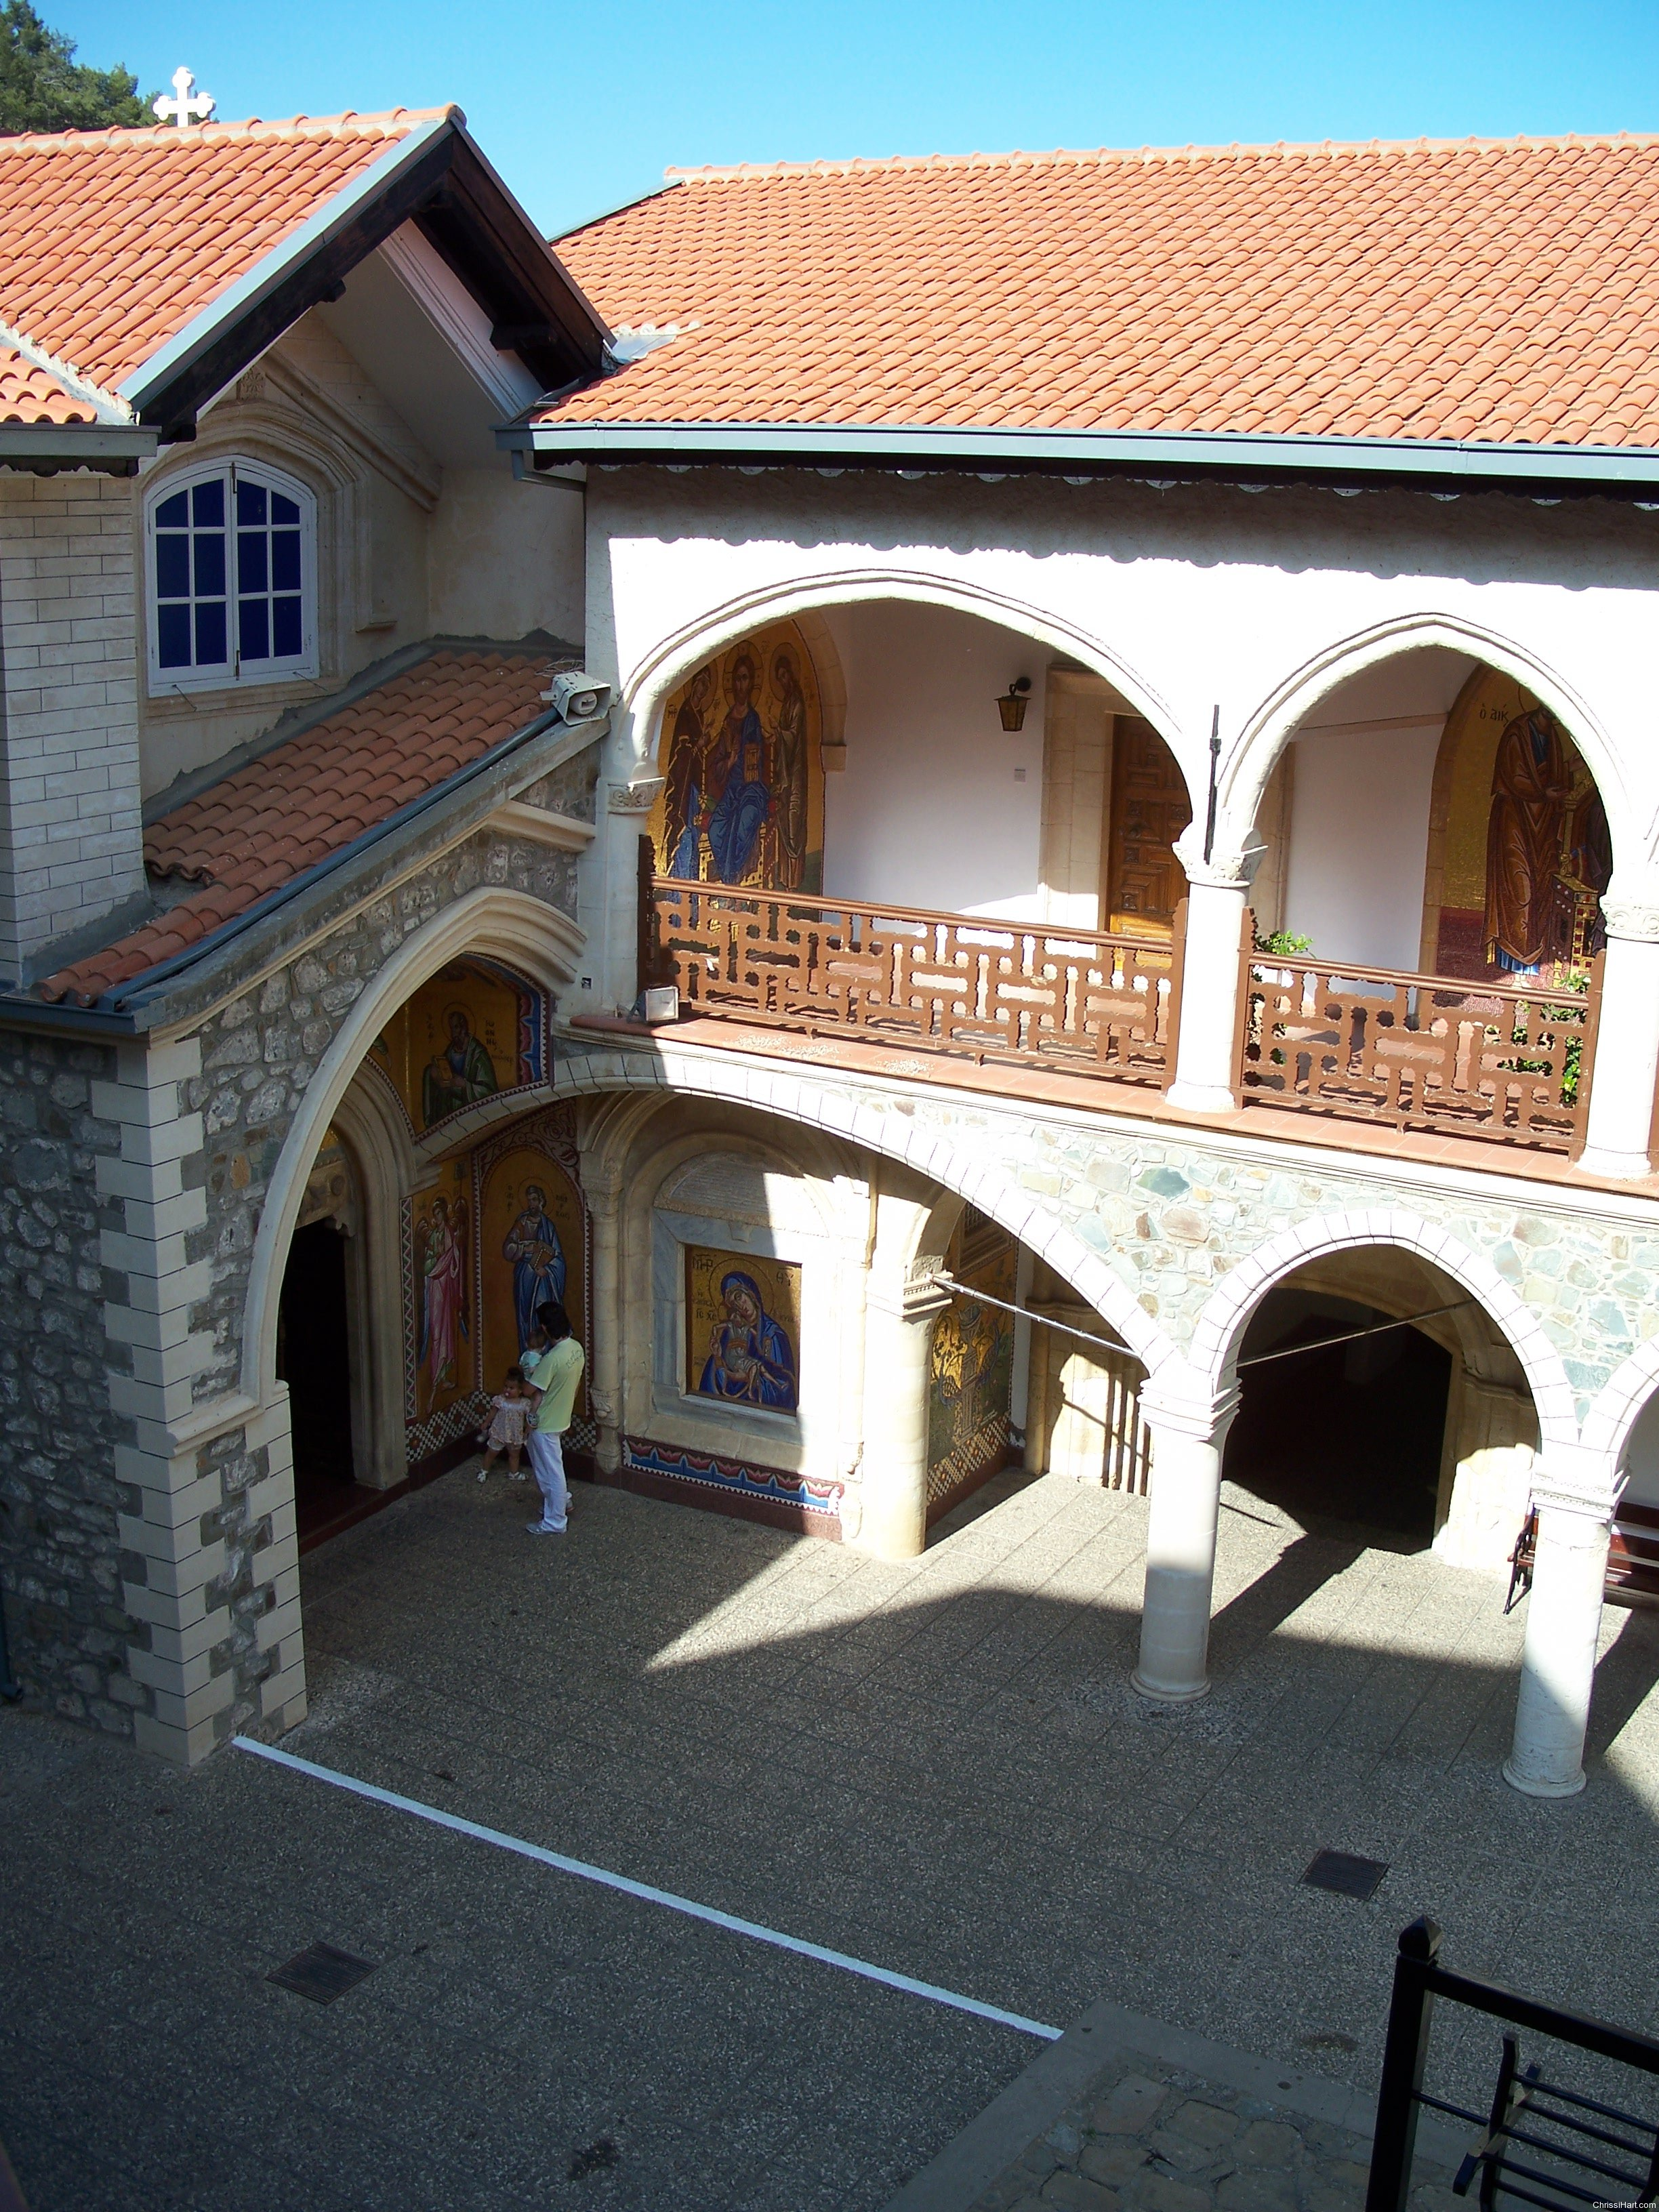 Church entrance from above